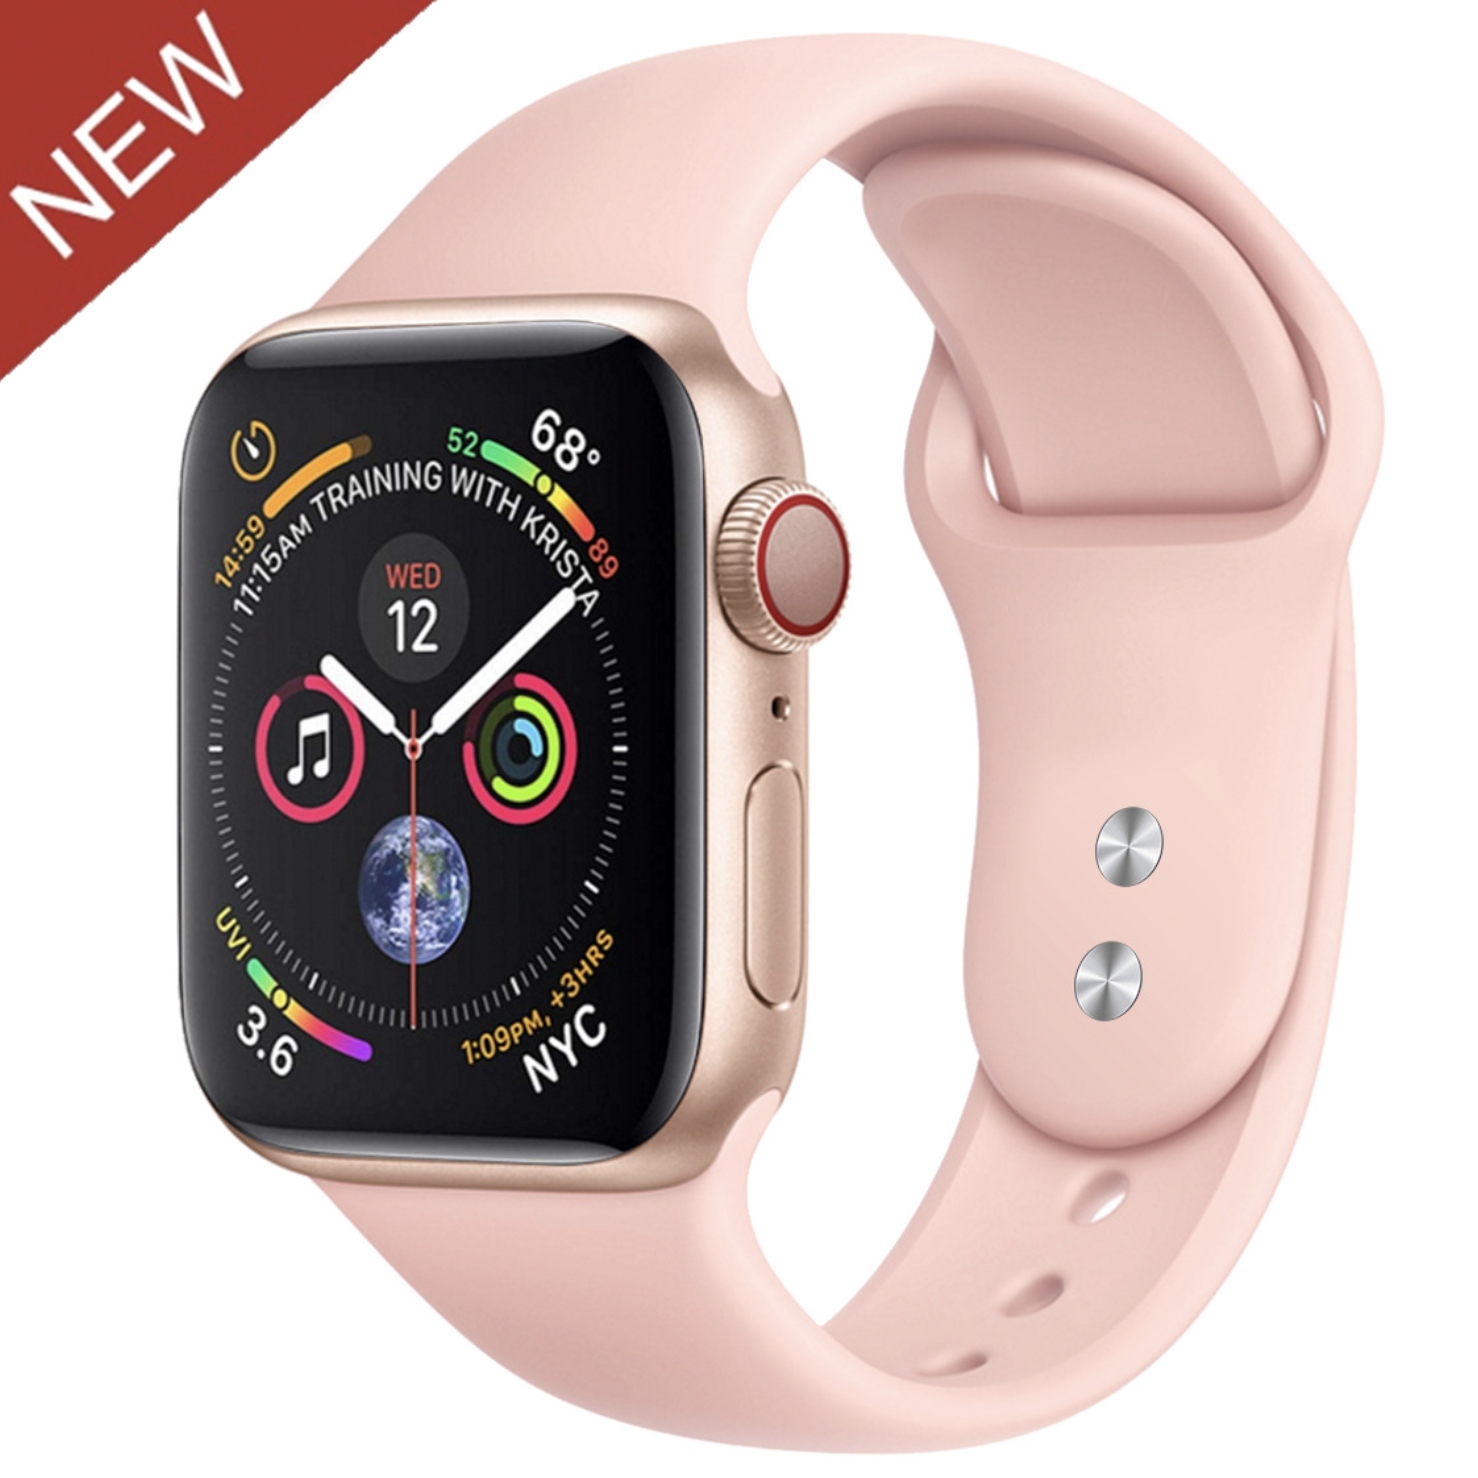 Sport Rubber Siliconen vrouwen band iwatch apple horloge serie 5/4/3 pols applewatch band strap voor apple horloge band apple fabriek